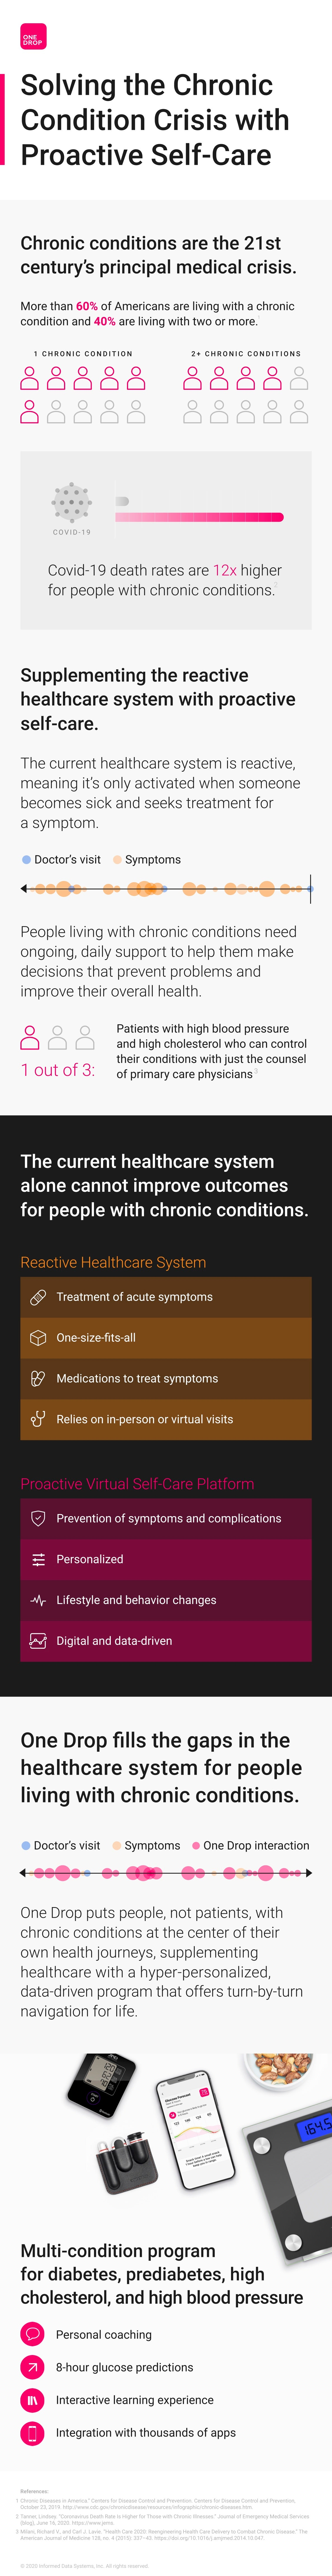 solving the chronic condition crisis